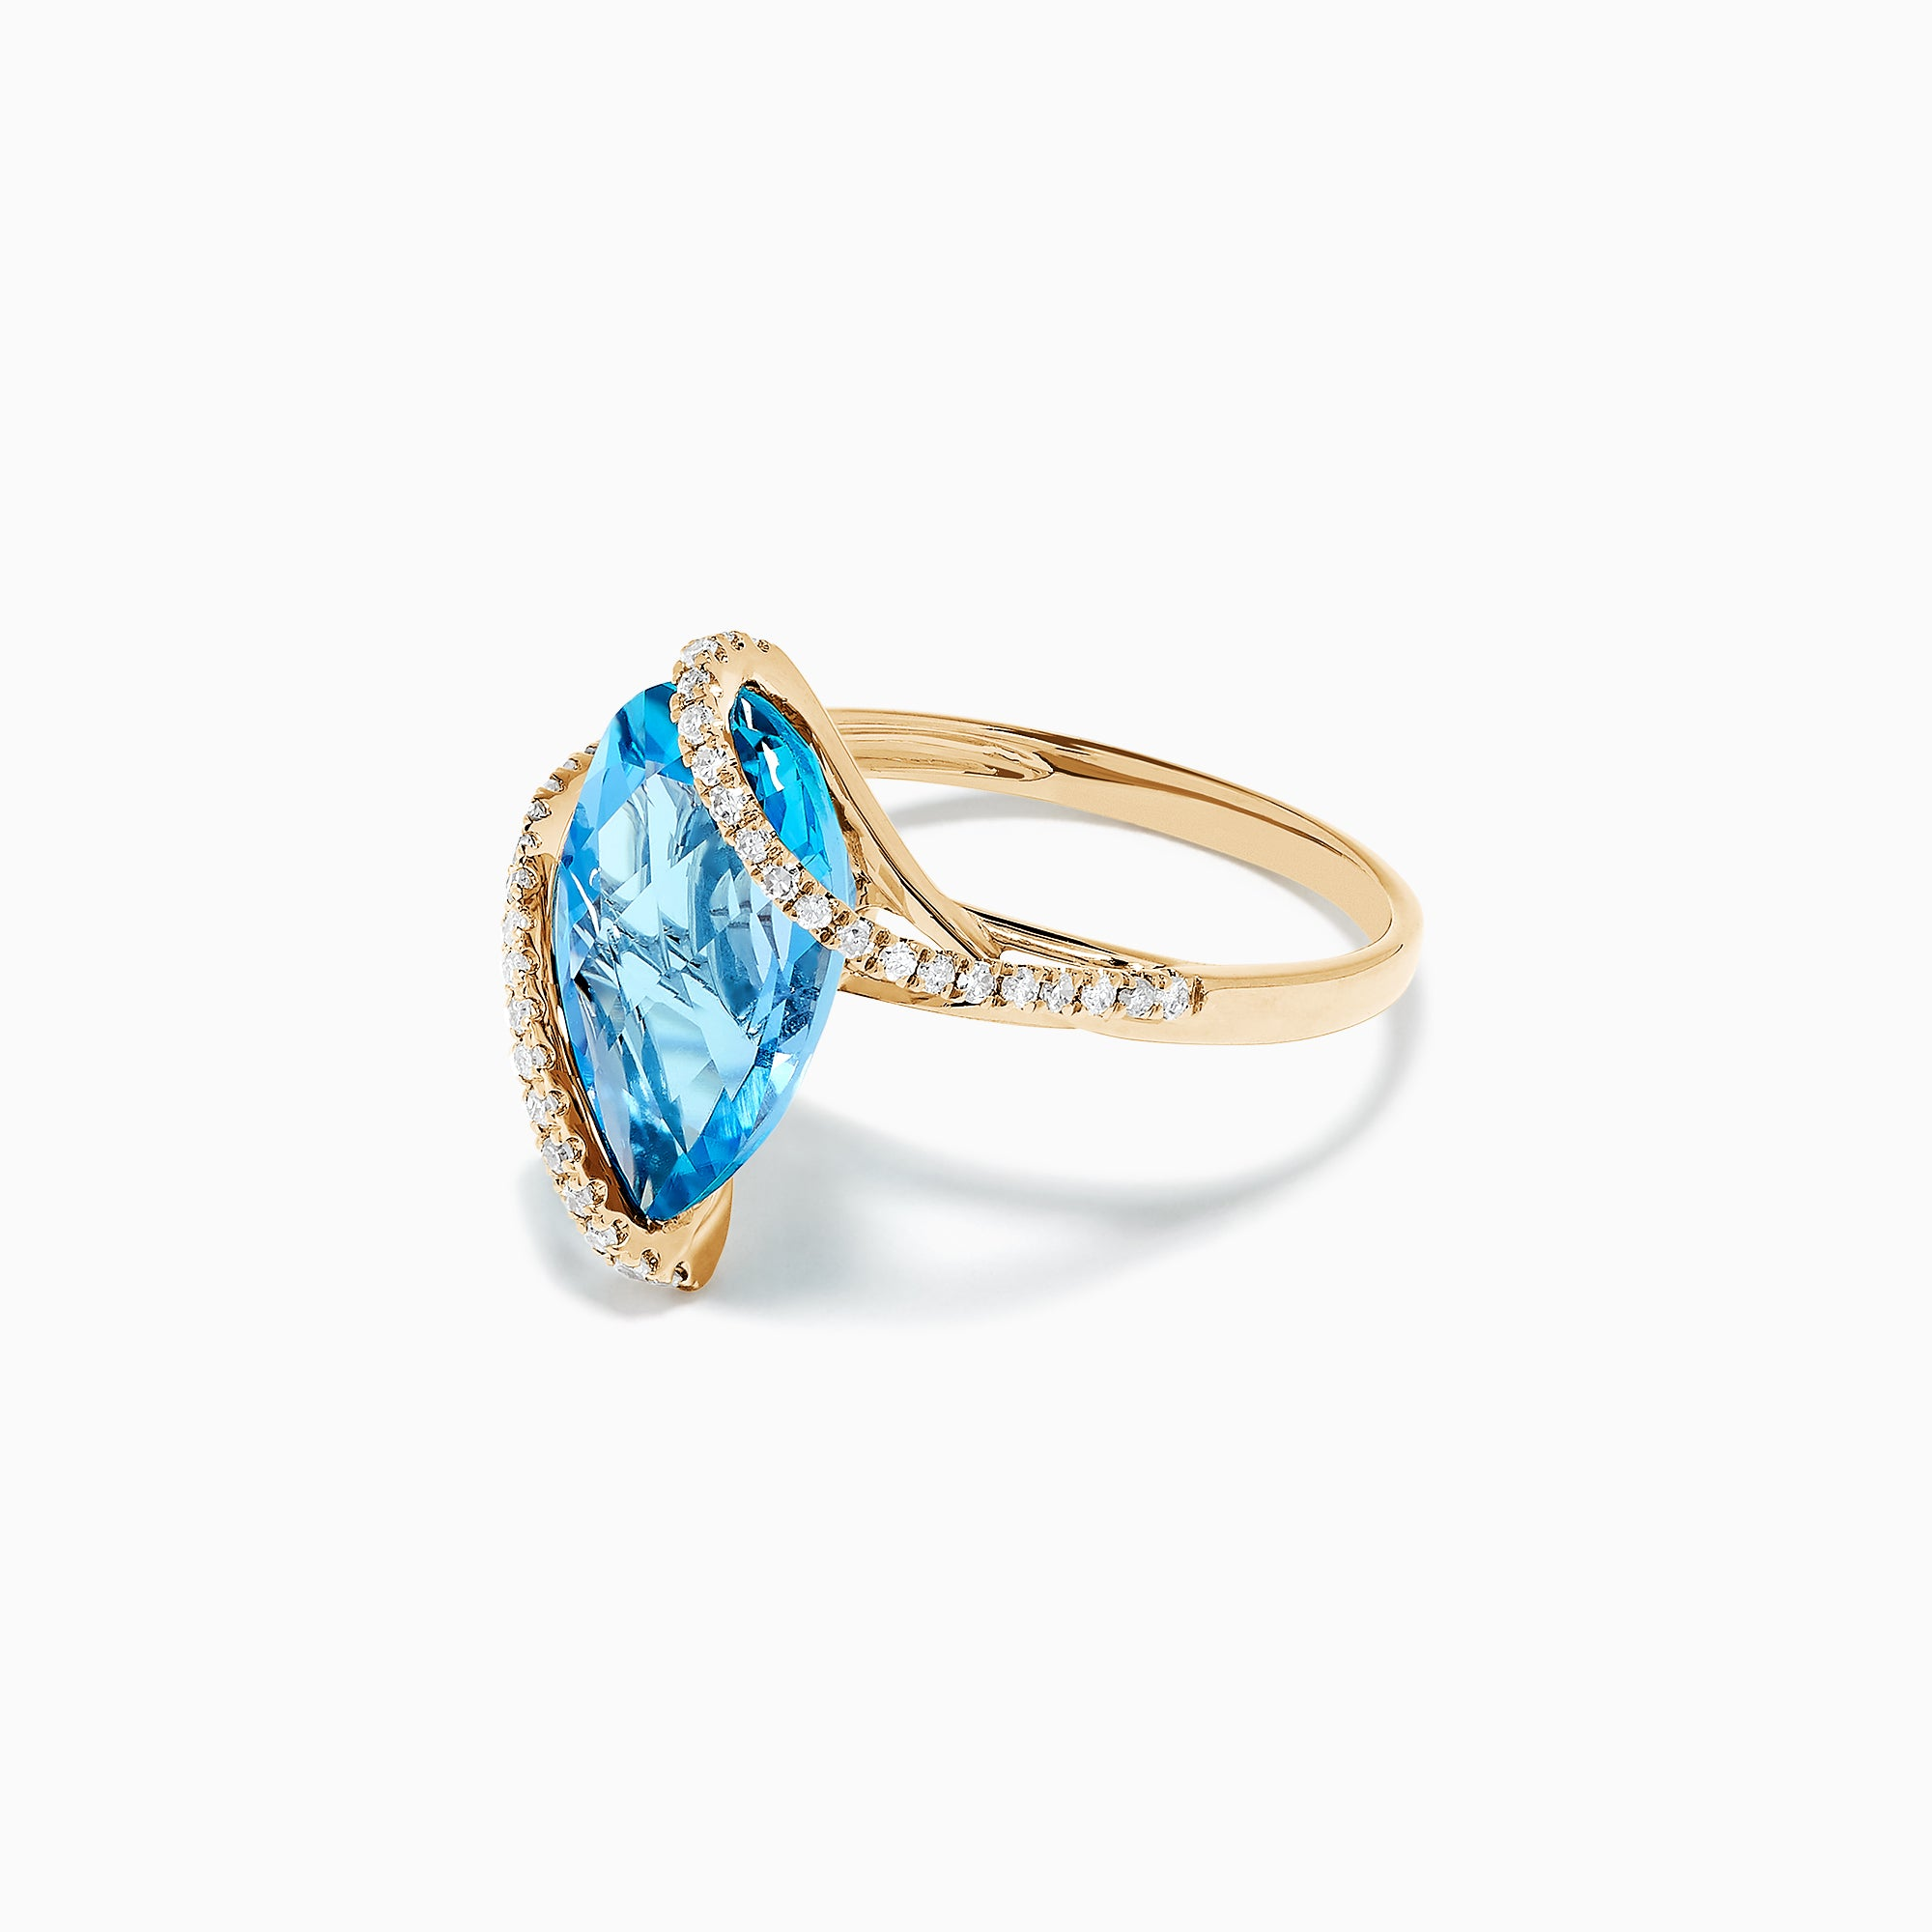 Effy Ocean Bleu 14K Yellow Gold Blue Topaz and Diamond Ring, 6.28 TCW